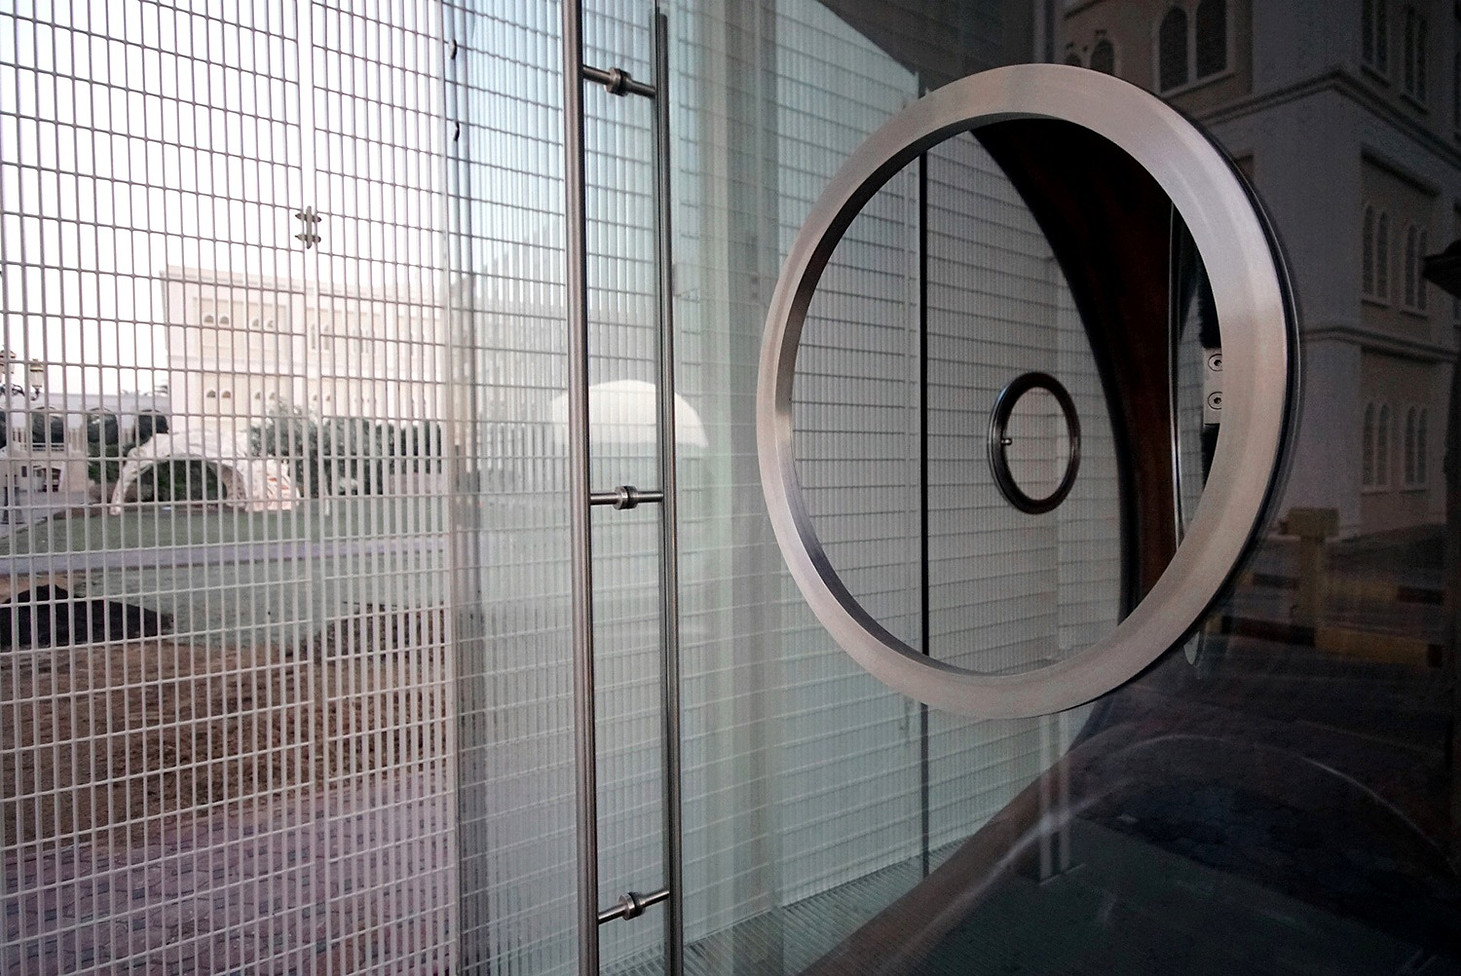 View of Security Booth air conditioned space through entry door and porthole window